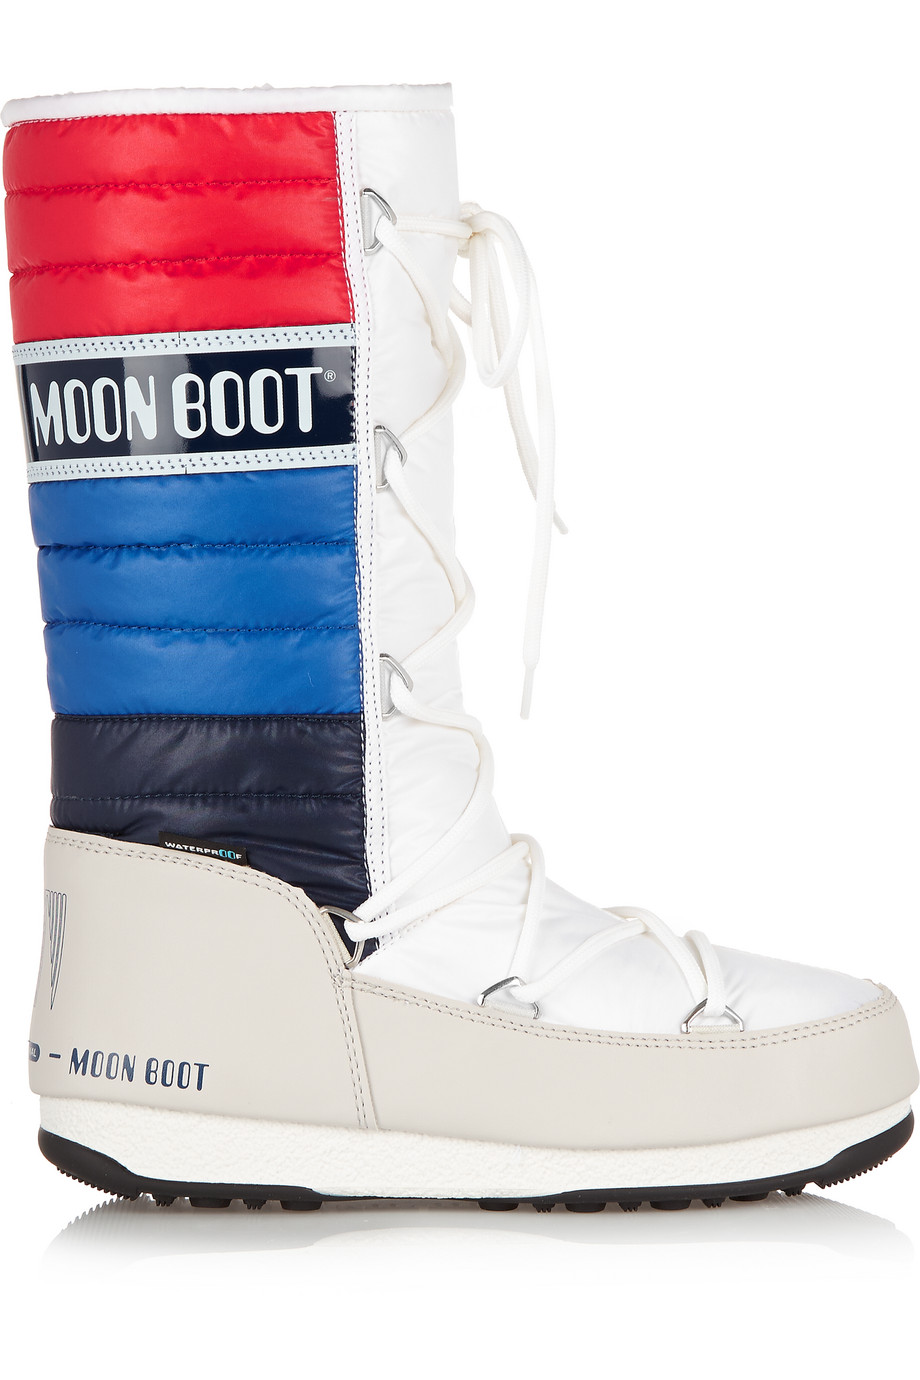 Moon Boot Quilted Shell and Faux Leather Boots, Size: 37